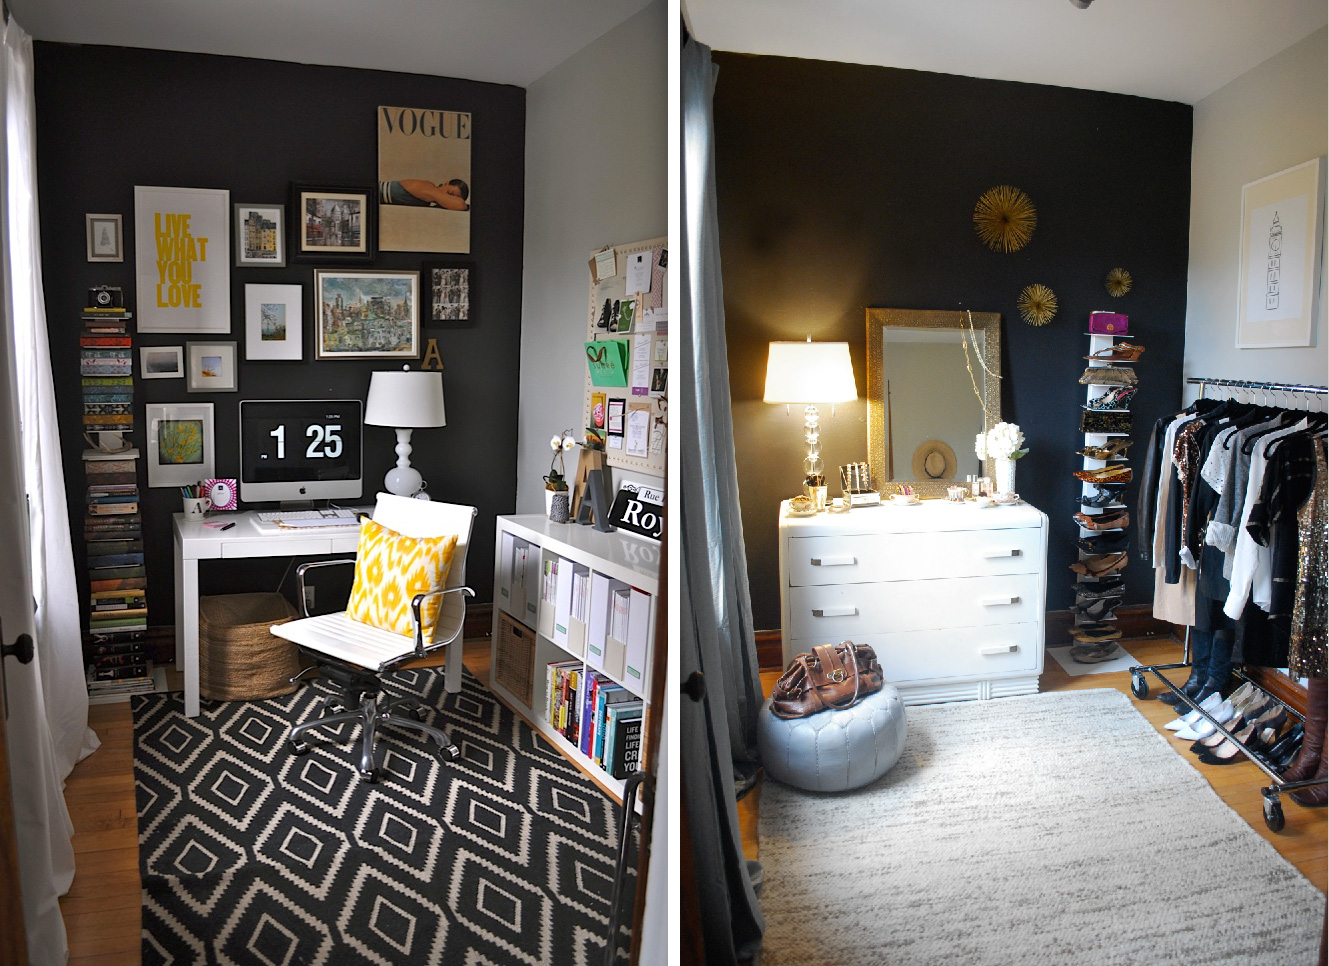 Live creating yourself lcy styles on refinery29 one room two ways solutioingenieria Images